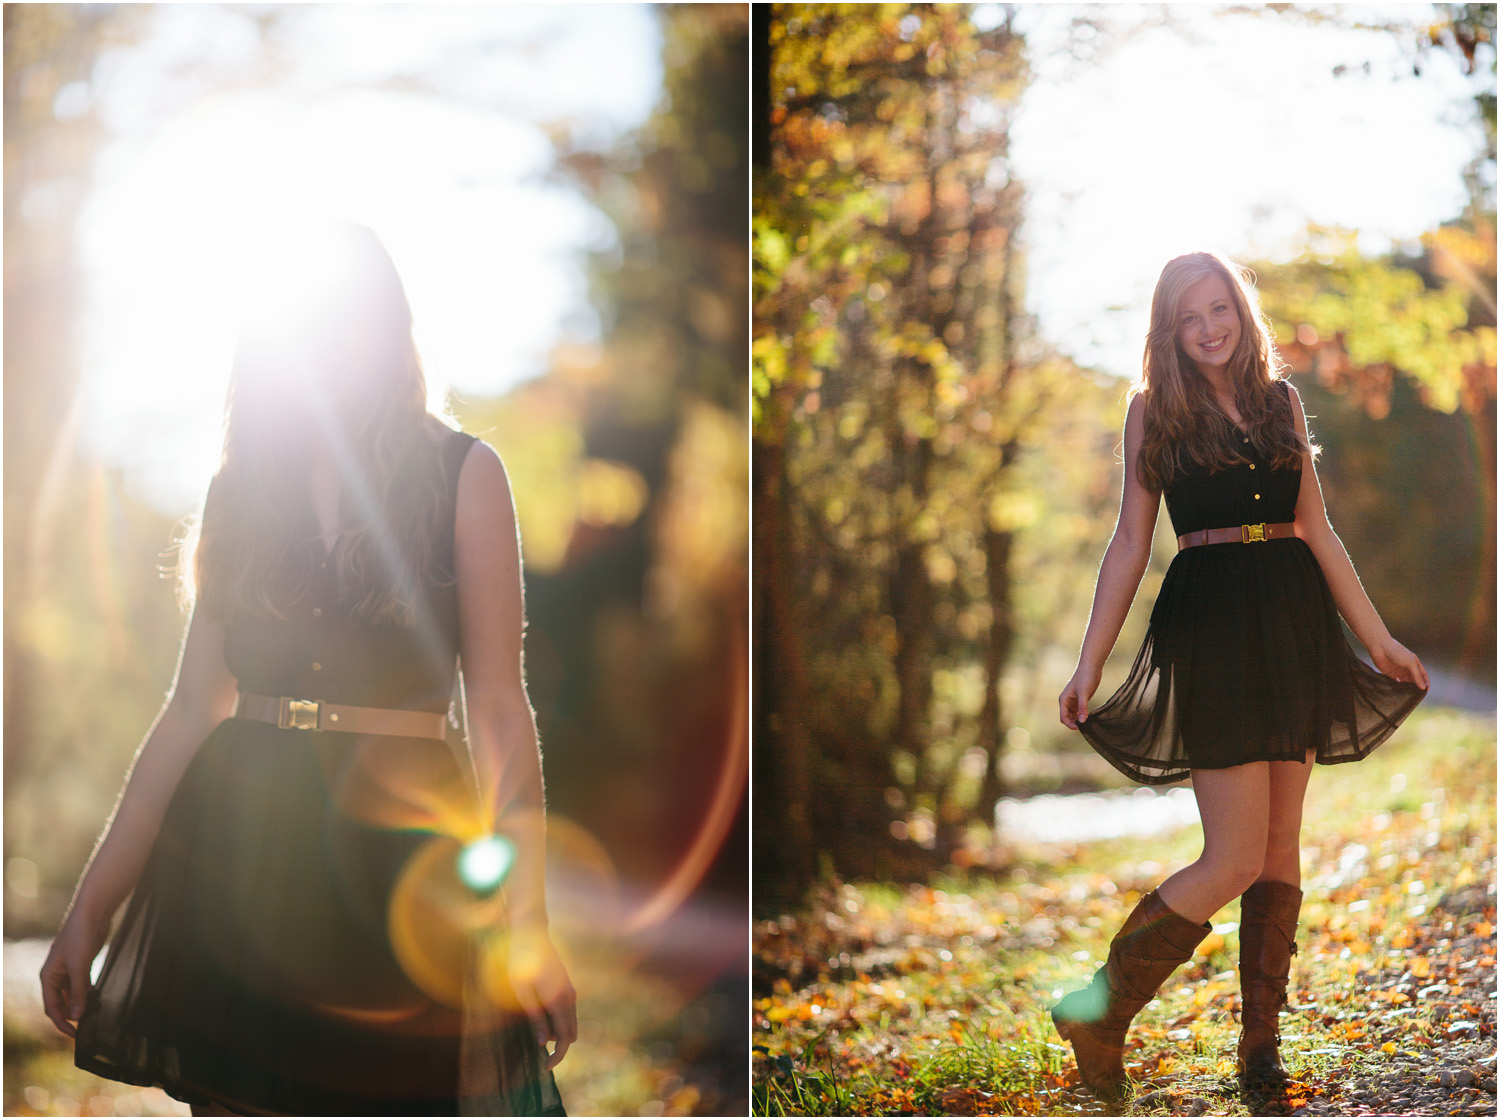 What cool lens flare! - Cleveland Senior Portraits - Shelby Searcy